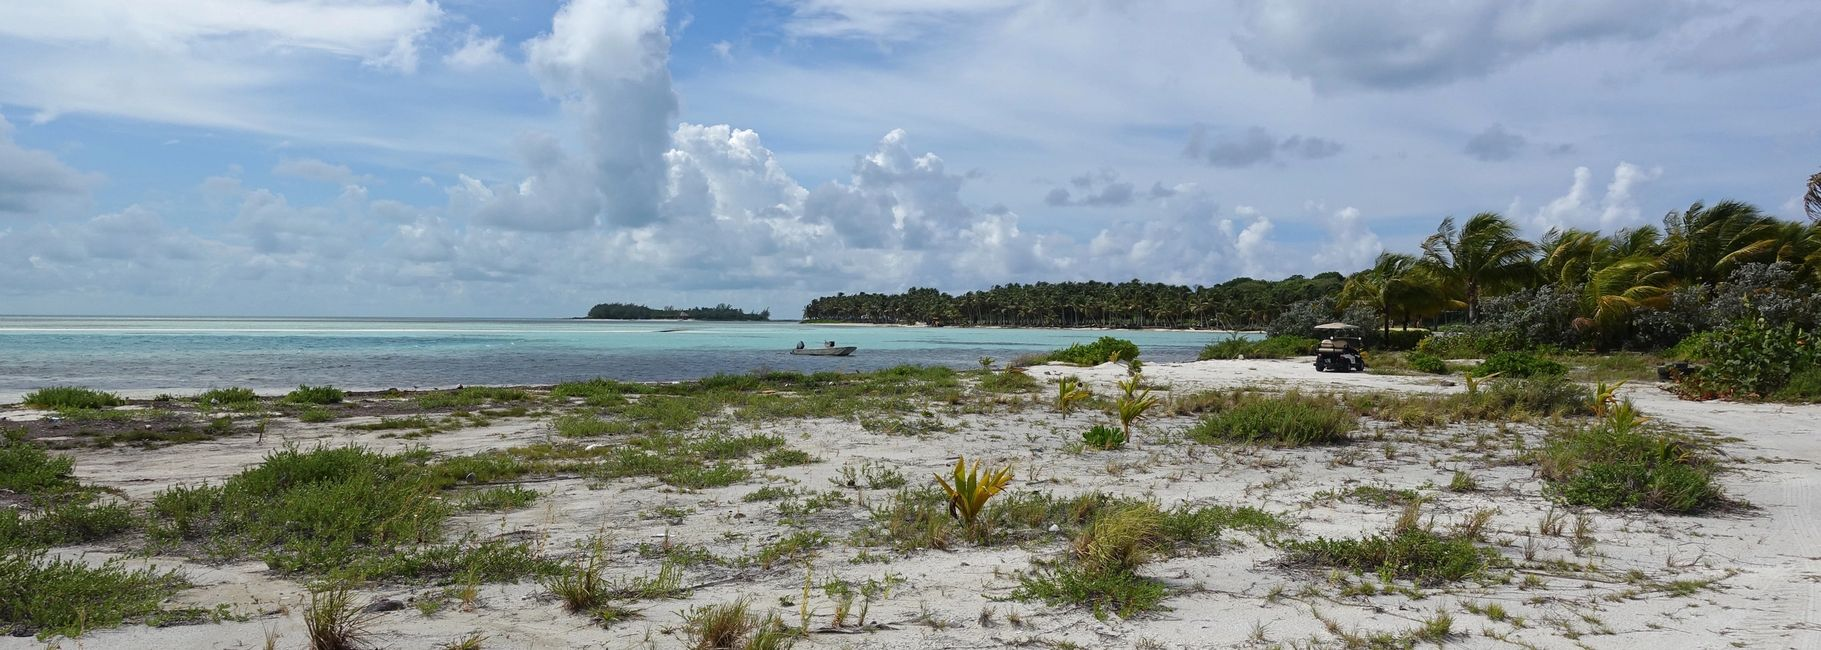 Cat Cay, Bahamas. FAQs on charter flights.